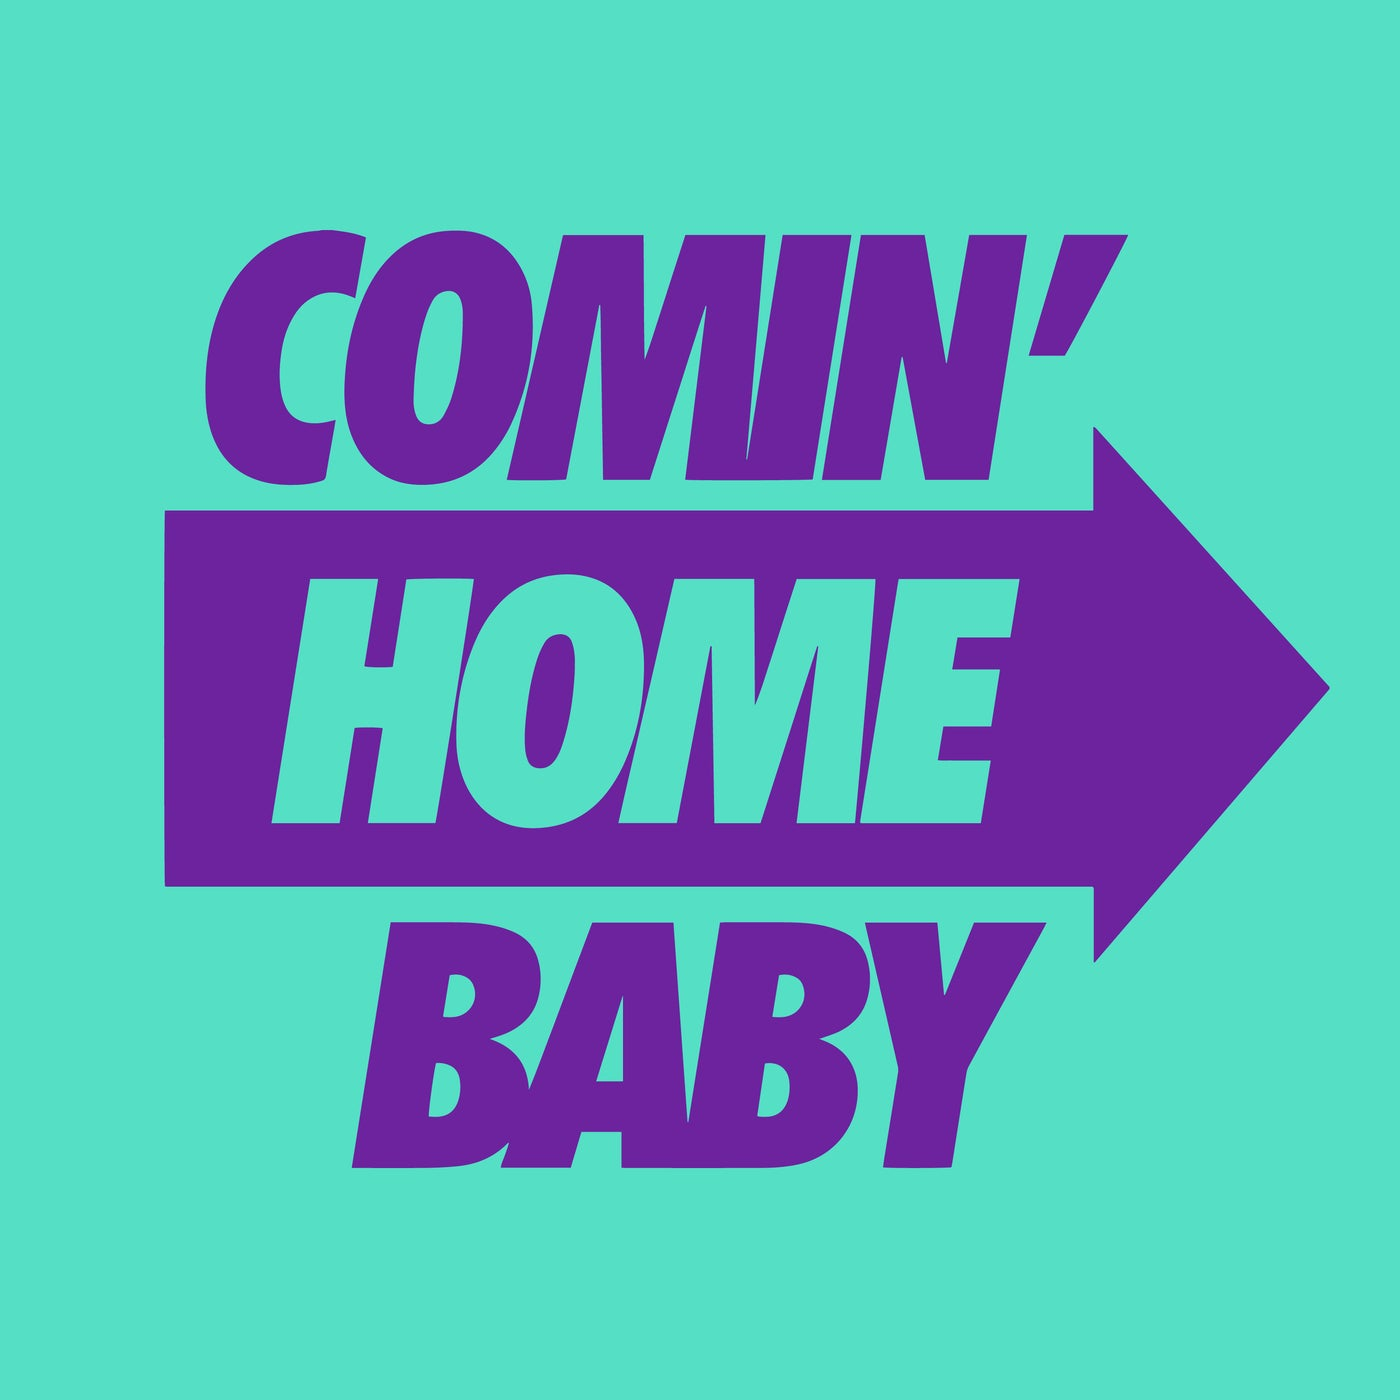 Download Comin' Home Baby - David Penn and KPD Remix on Electrobuzz